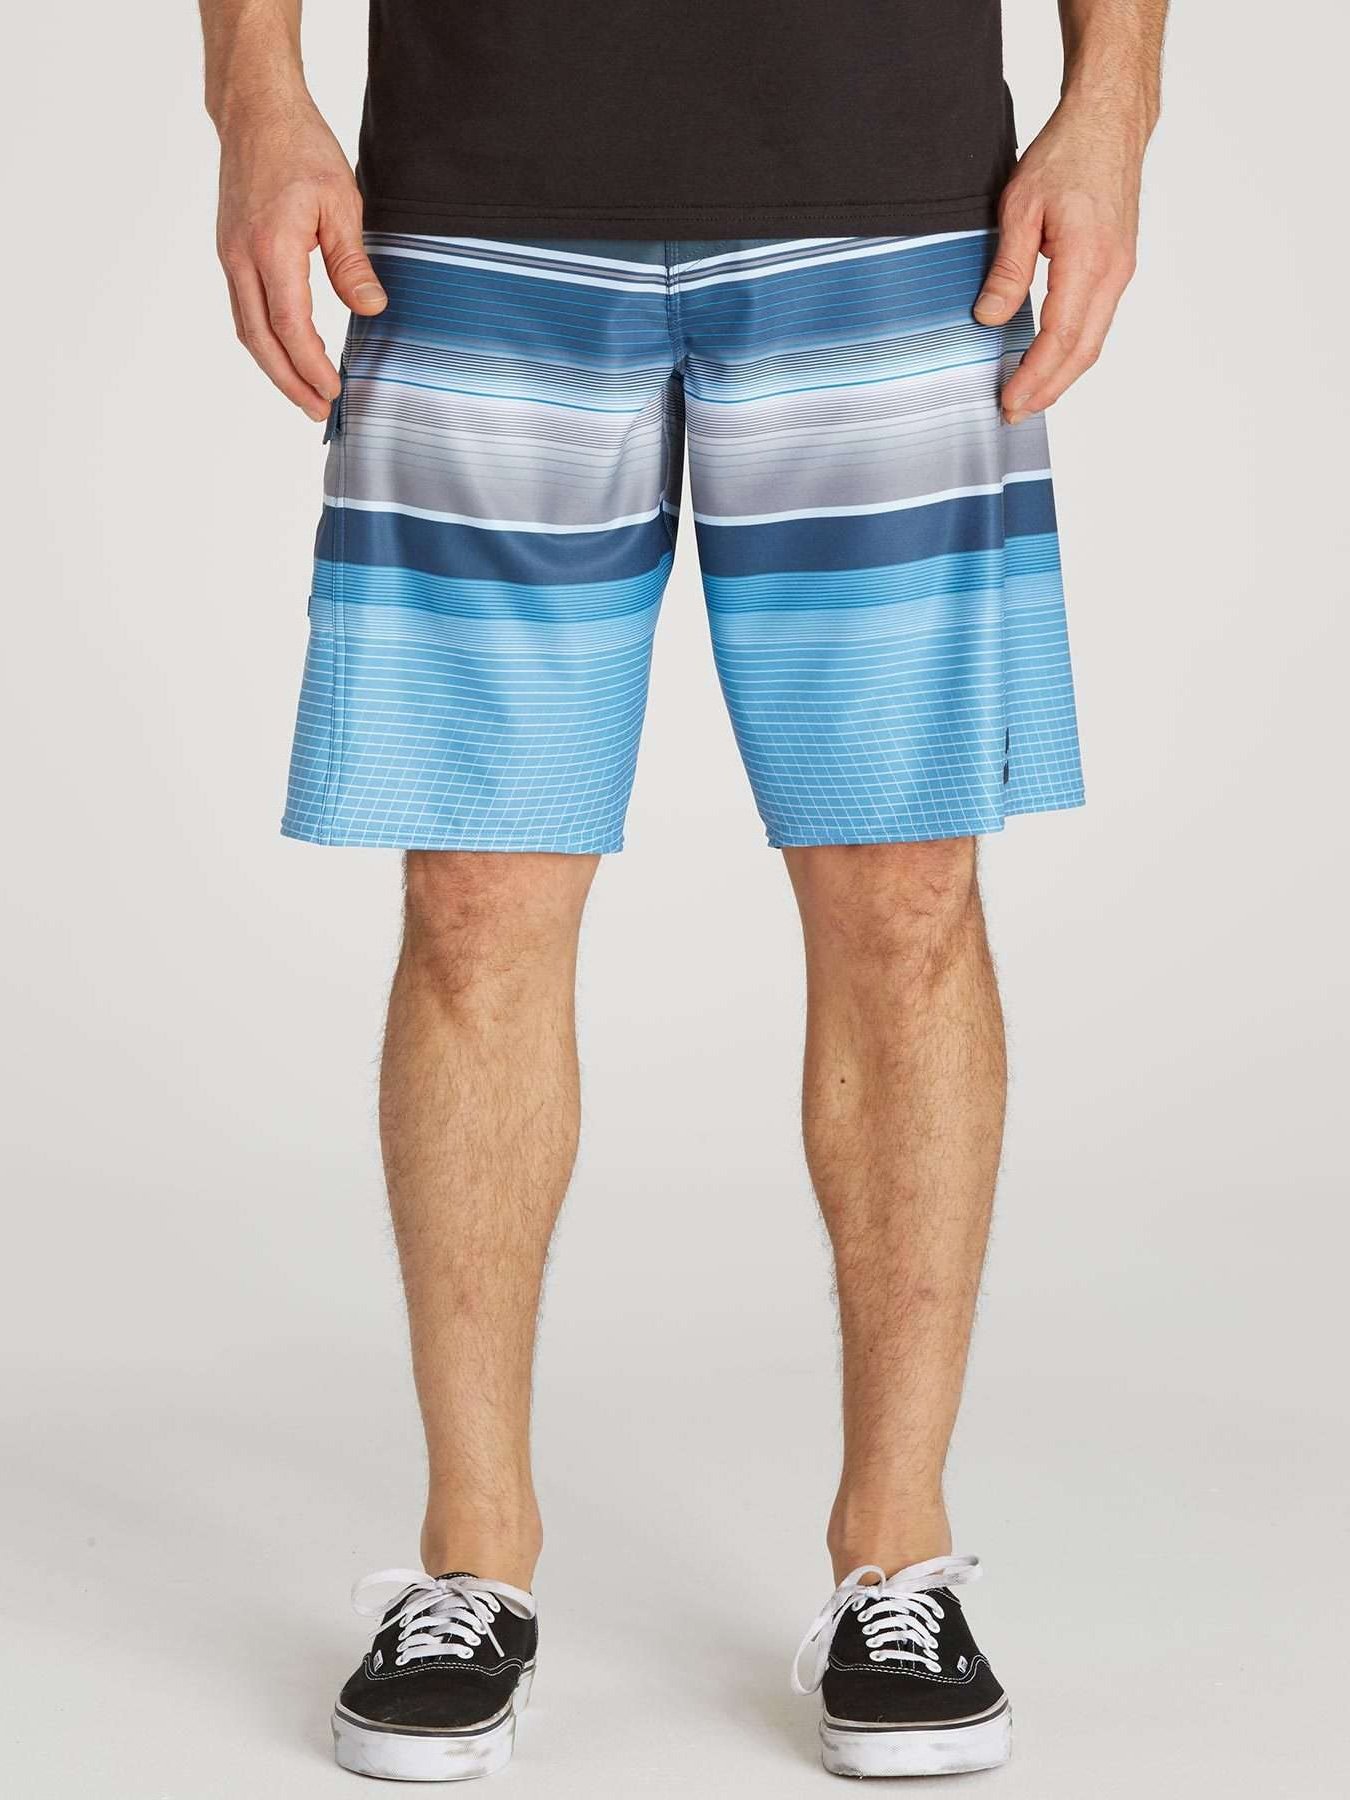 Billabong Men's All Day X Stripe Boardshorts - Blue - 28